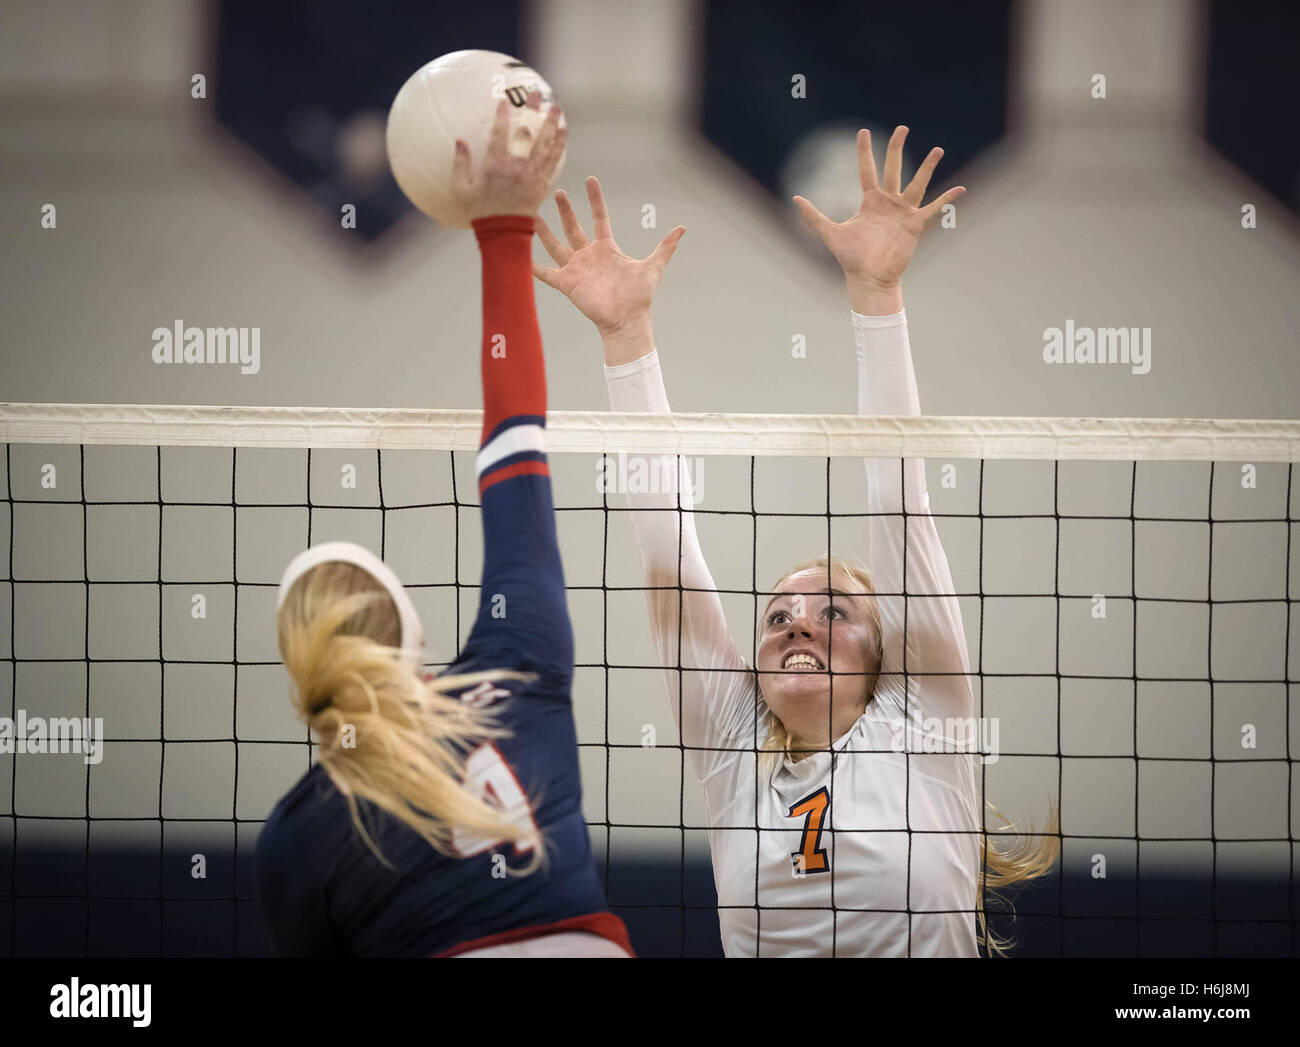 Palm Beach Gardens, Florida, USA. 29th Oct, 2016. Benjamin Buccaneers Emma Lange (7) attempts to block a shot by Stock Photo